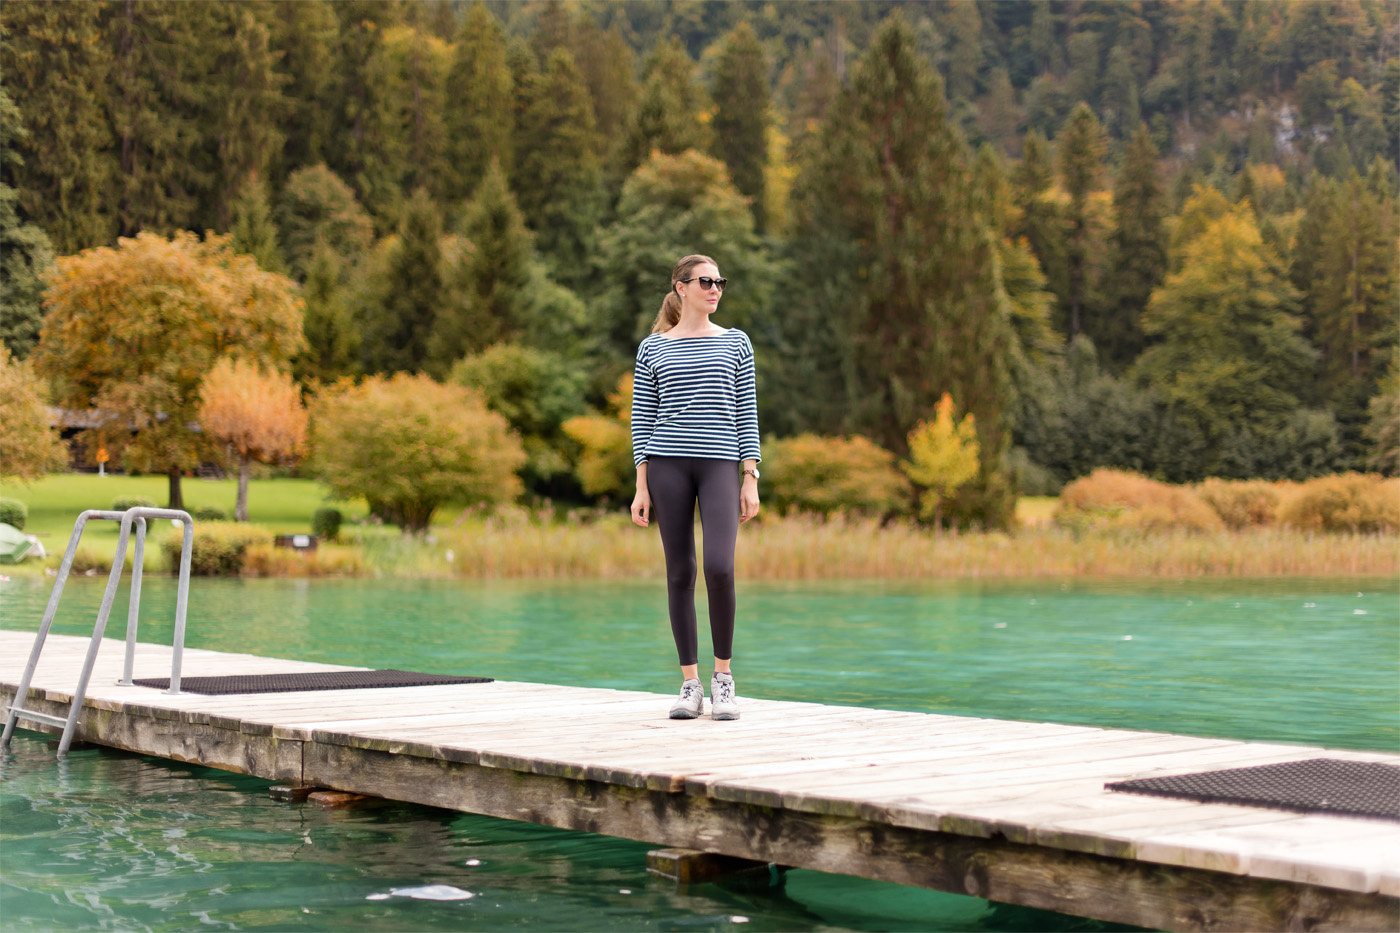 Travel: Day Trip to Neuschwanstein Castle and Lake Alpsee